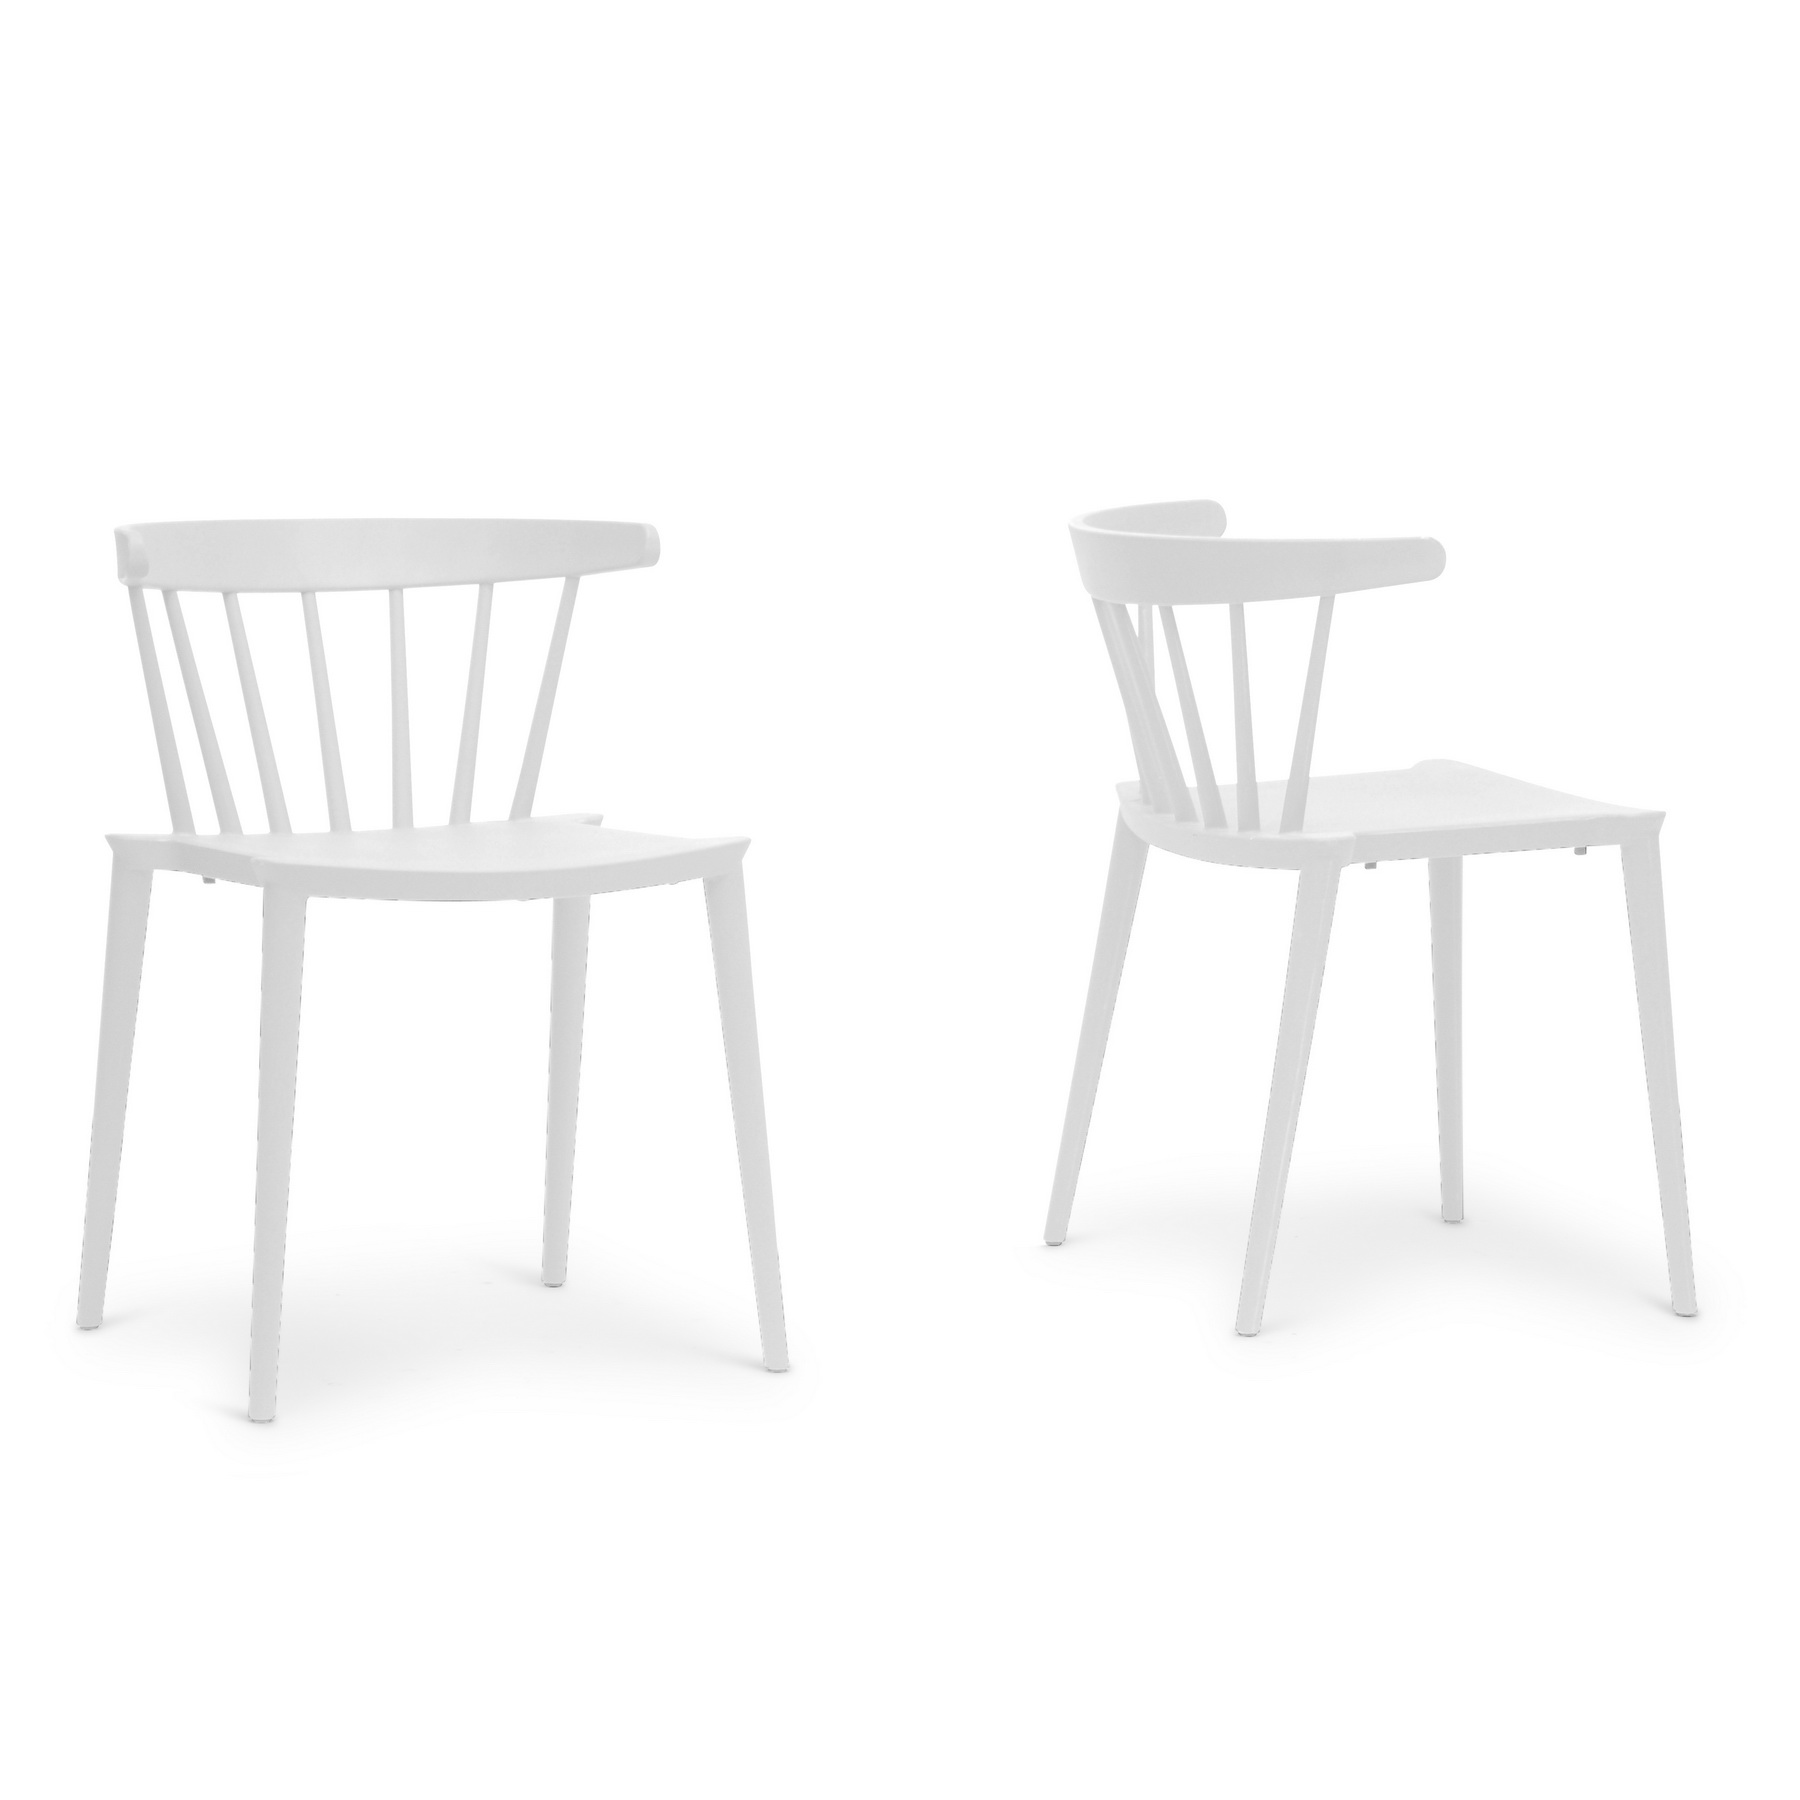 White Plastic Modern Chairs Baxton Studio Finchum White Plastic Stackable Modern